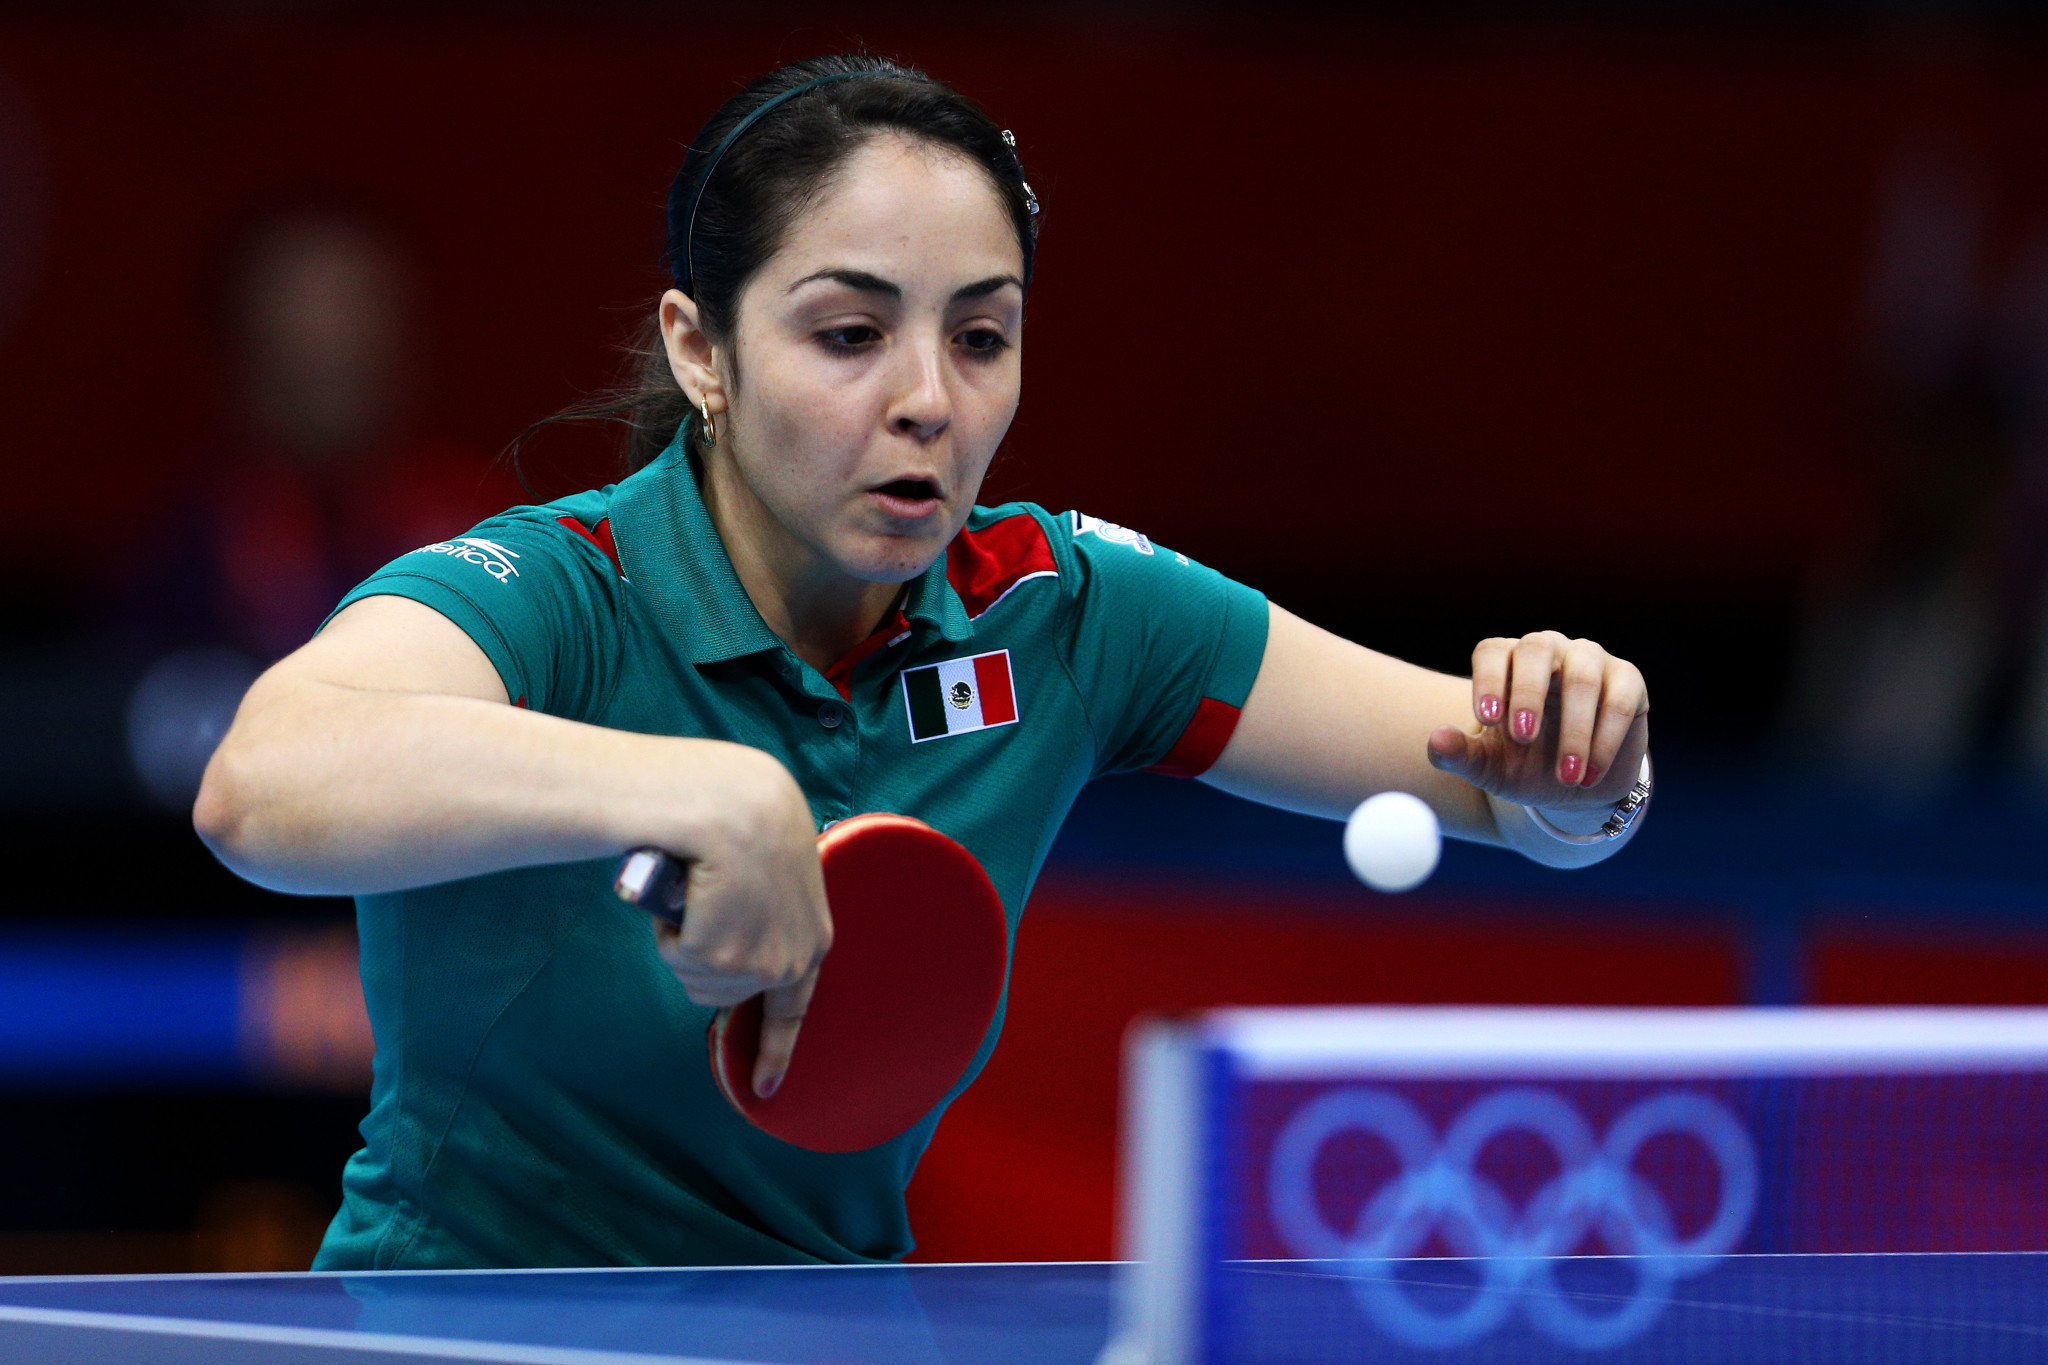 Mexico's Yadira Silva advanced in the women's singles competition ©Getty Images